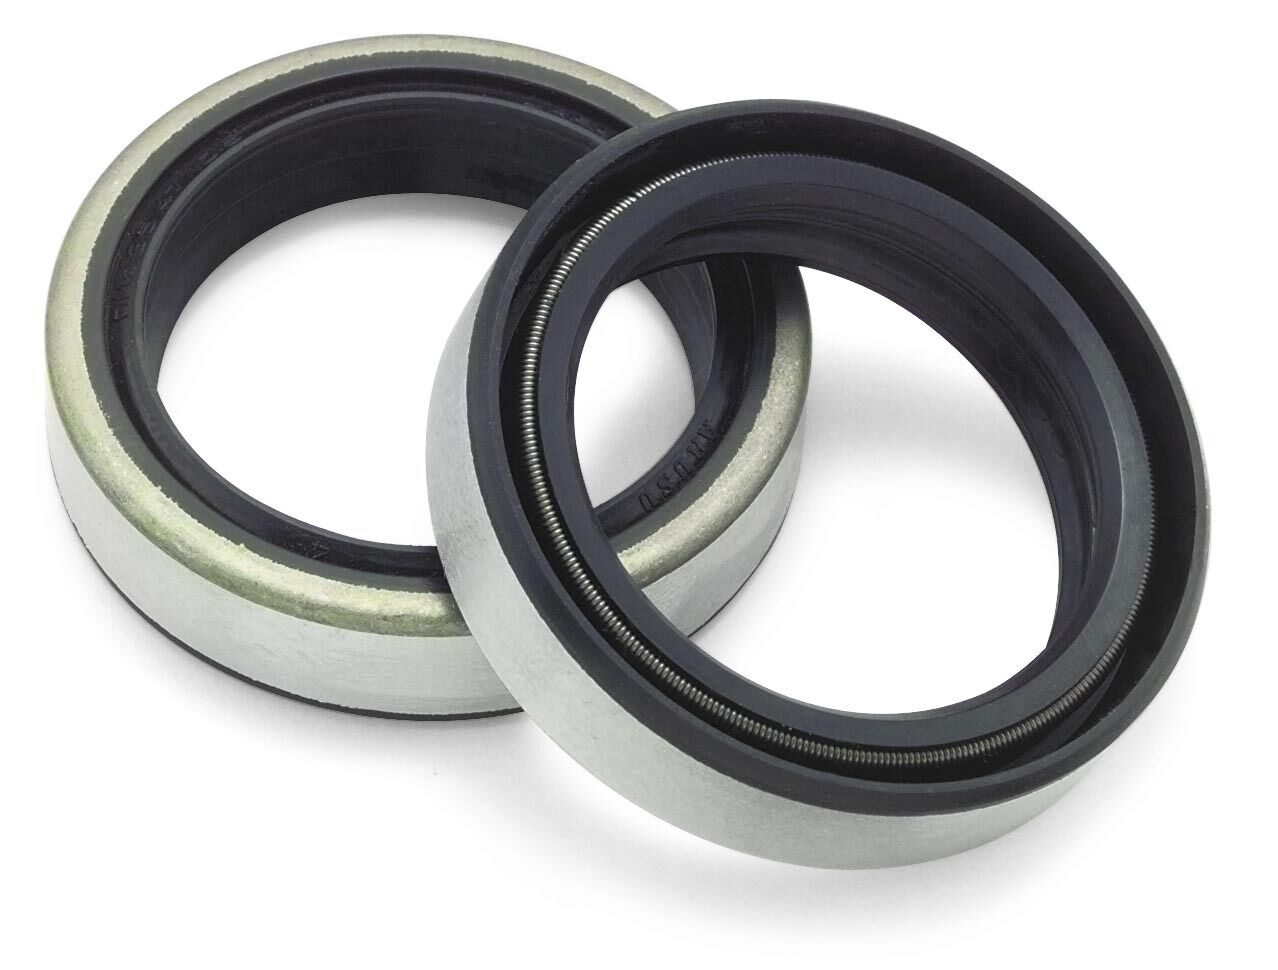 Oil Seal 403381n Fit Mazda Titan T3500 84 95 Diff Pinion Exc Turbo Fuse Box Norton Secured Powered By Verisign